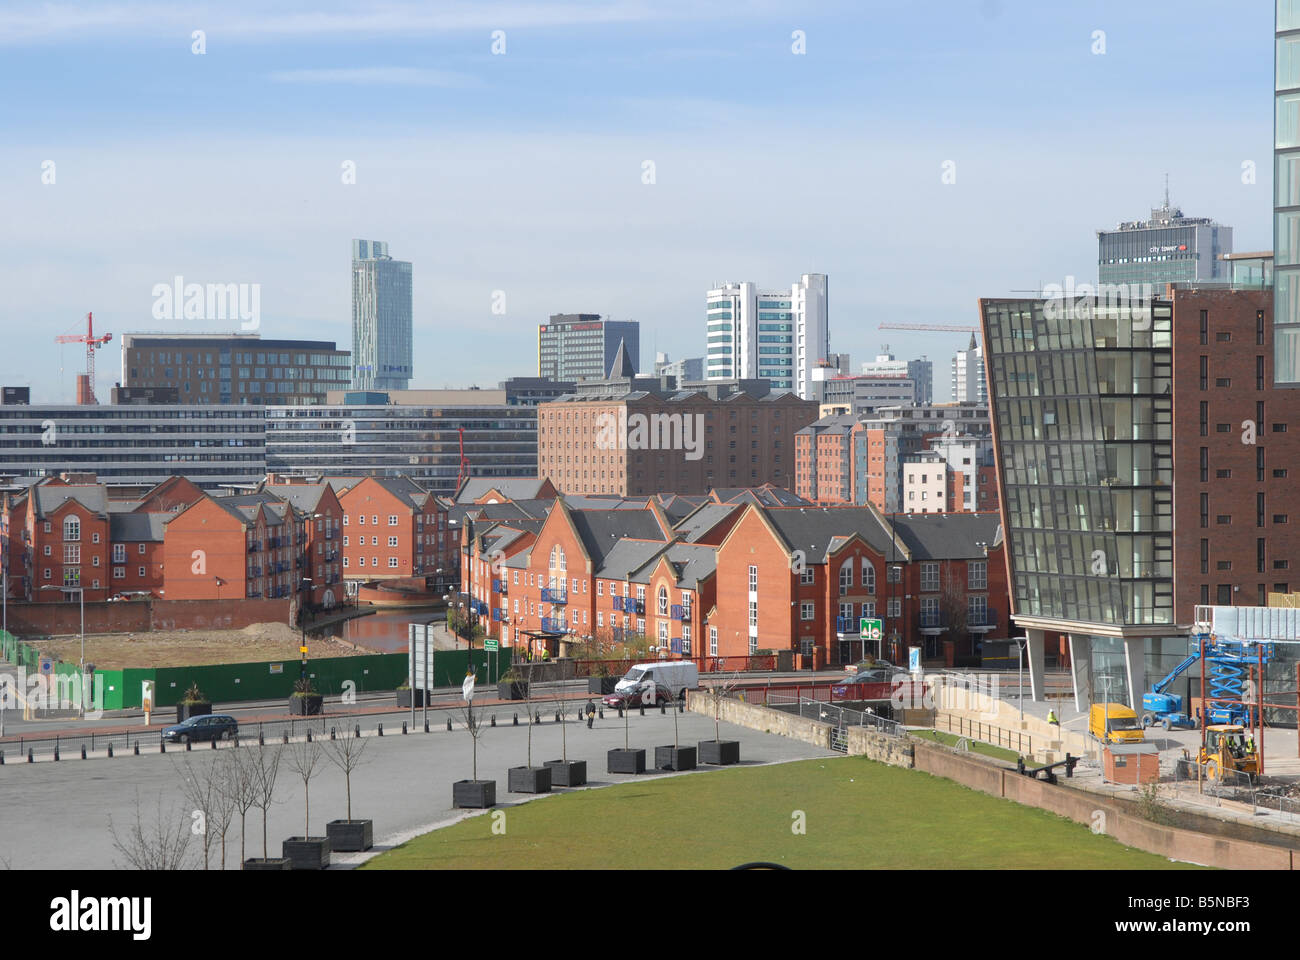 New apartments emerging over the city skyline in Manchester - Stock Image